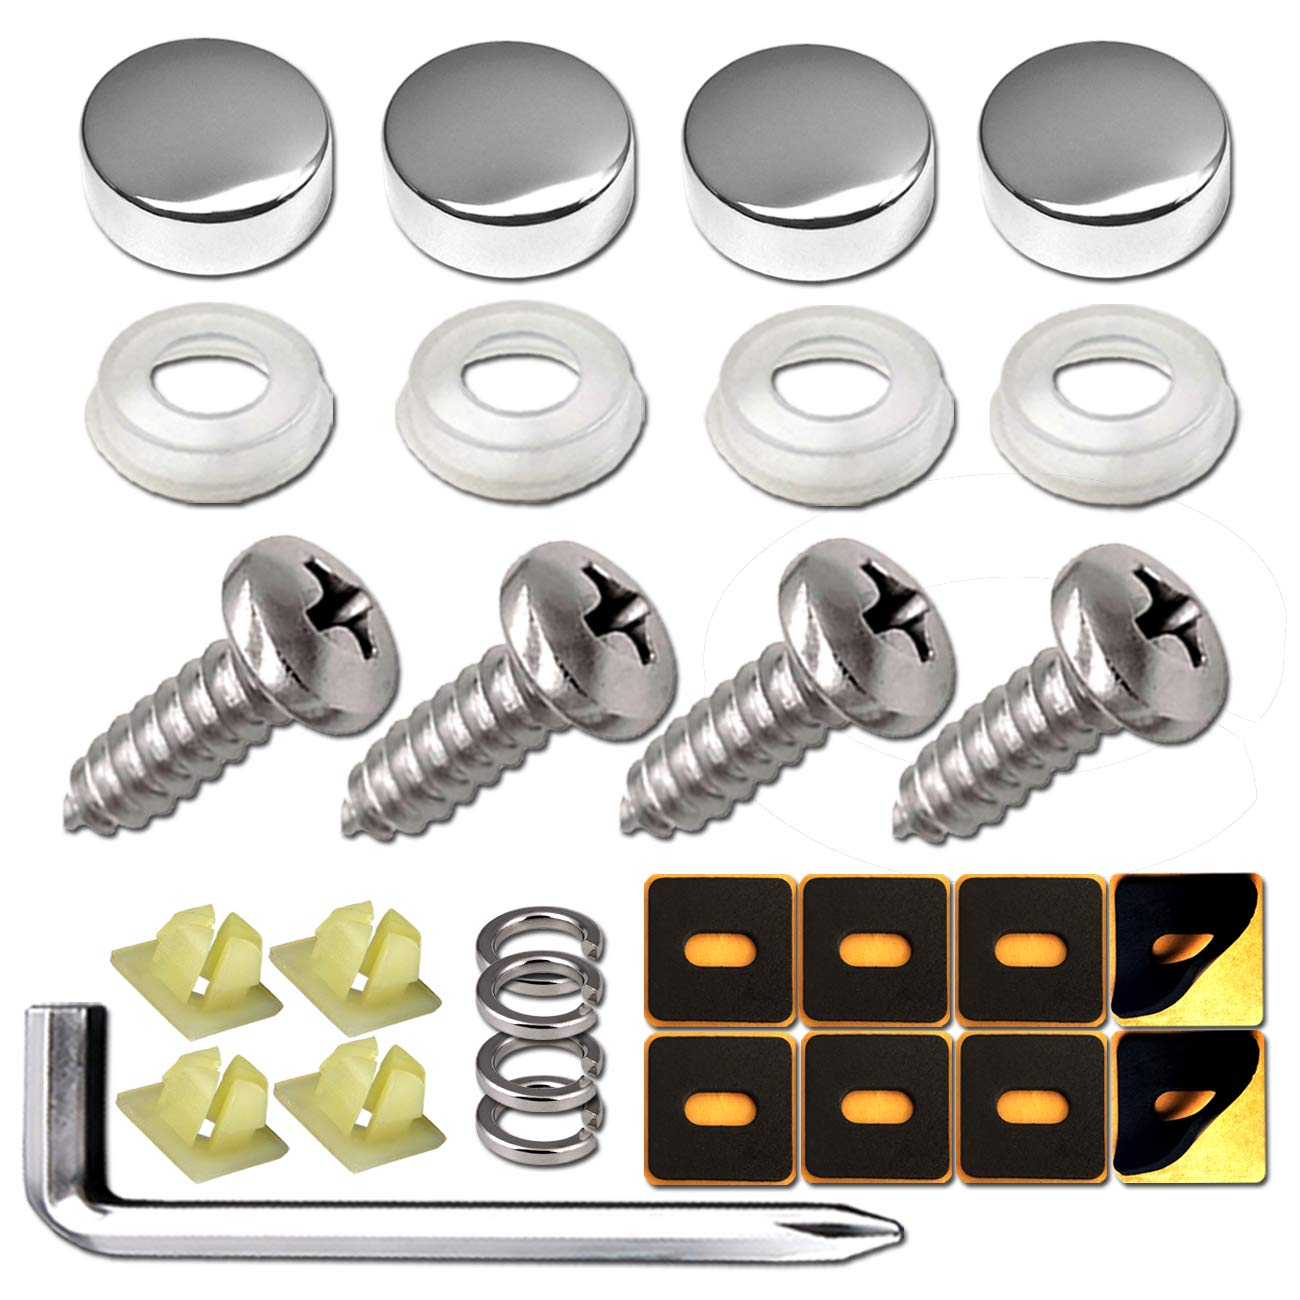 Frames and Covers on American Cars and Trucks License Plate Screws-Black-4PCS TANGGIFT Stainless Steel License Plate Screws for Fastening License Plates